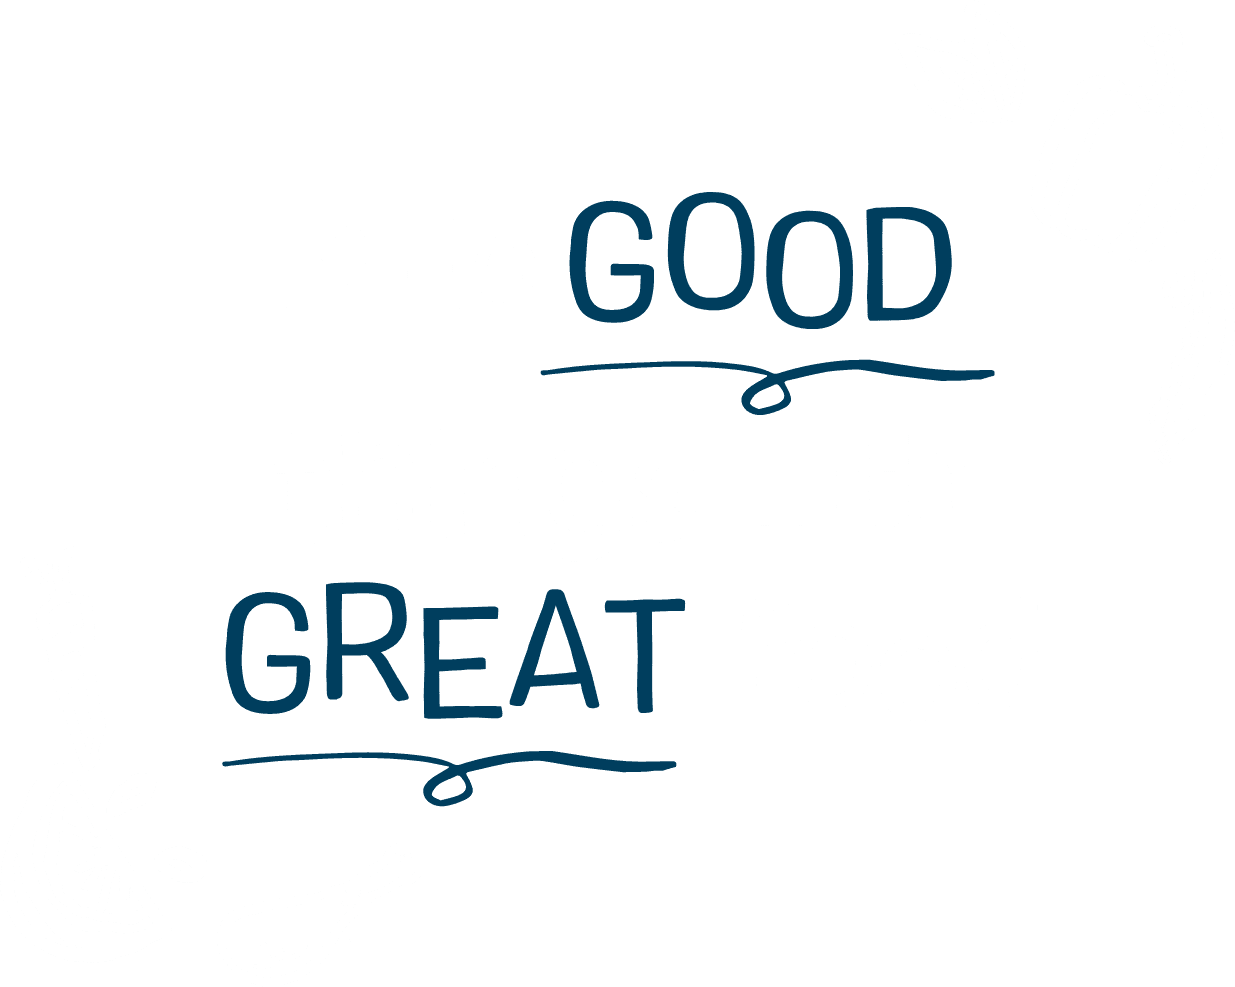 We do good things with great food